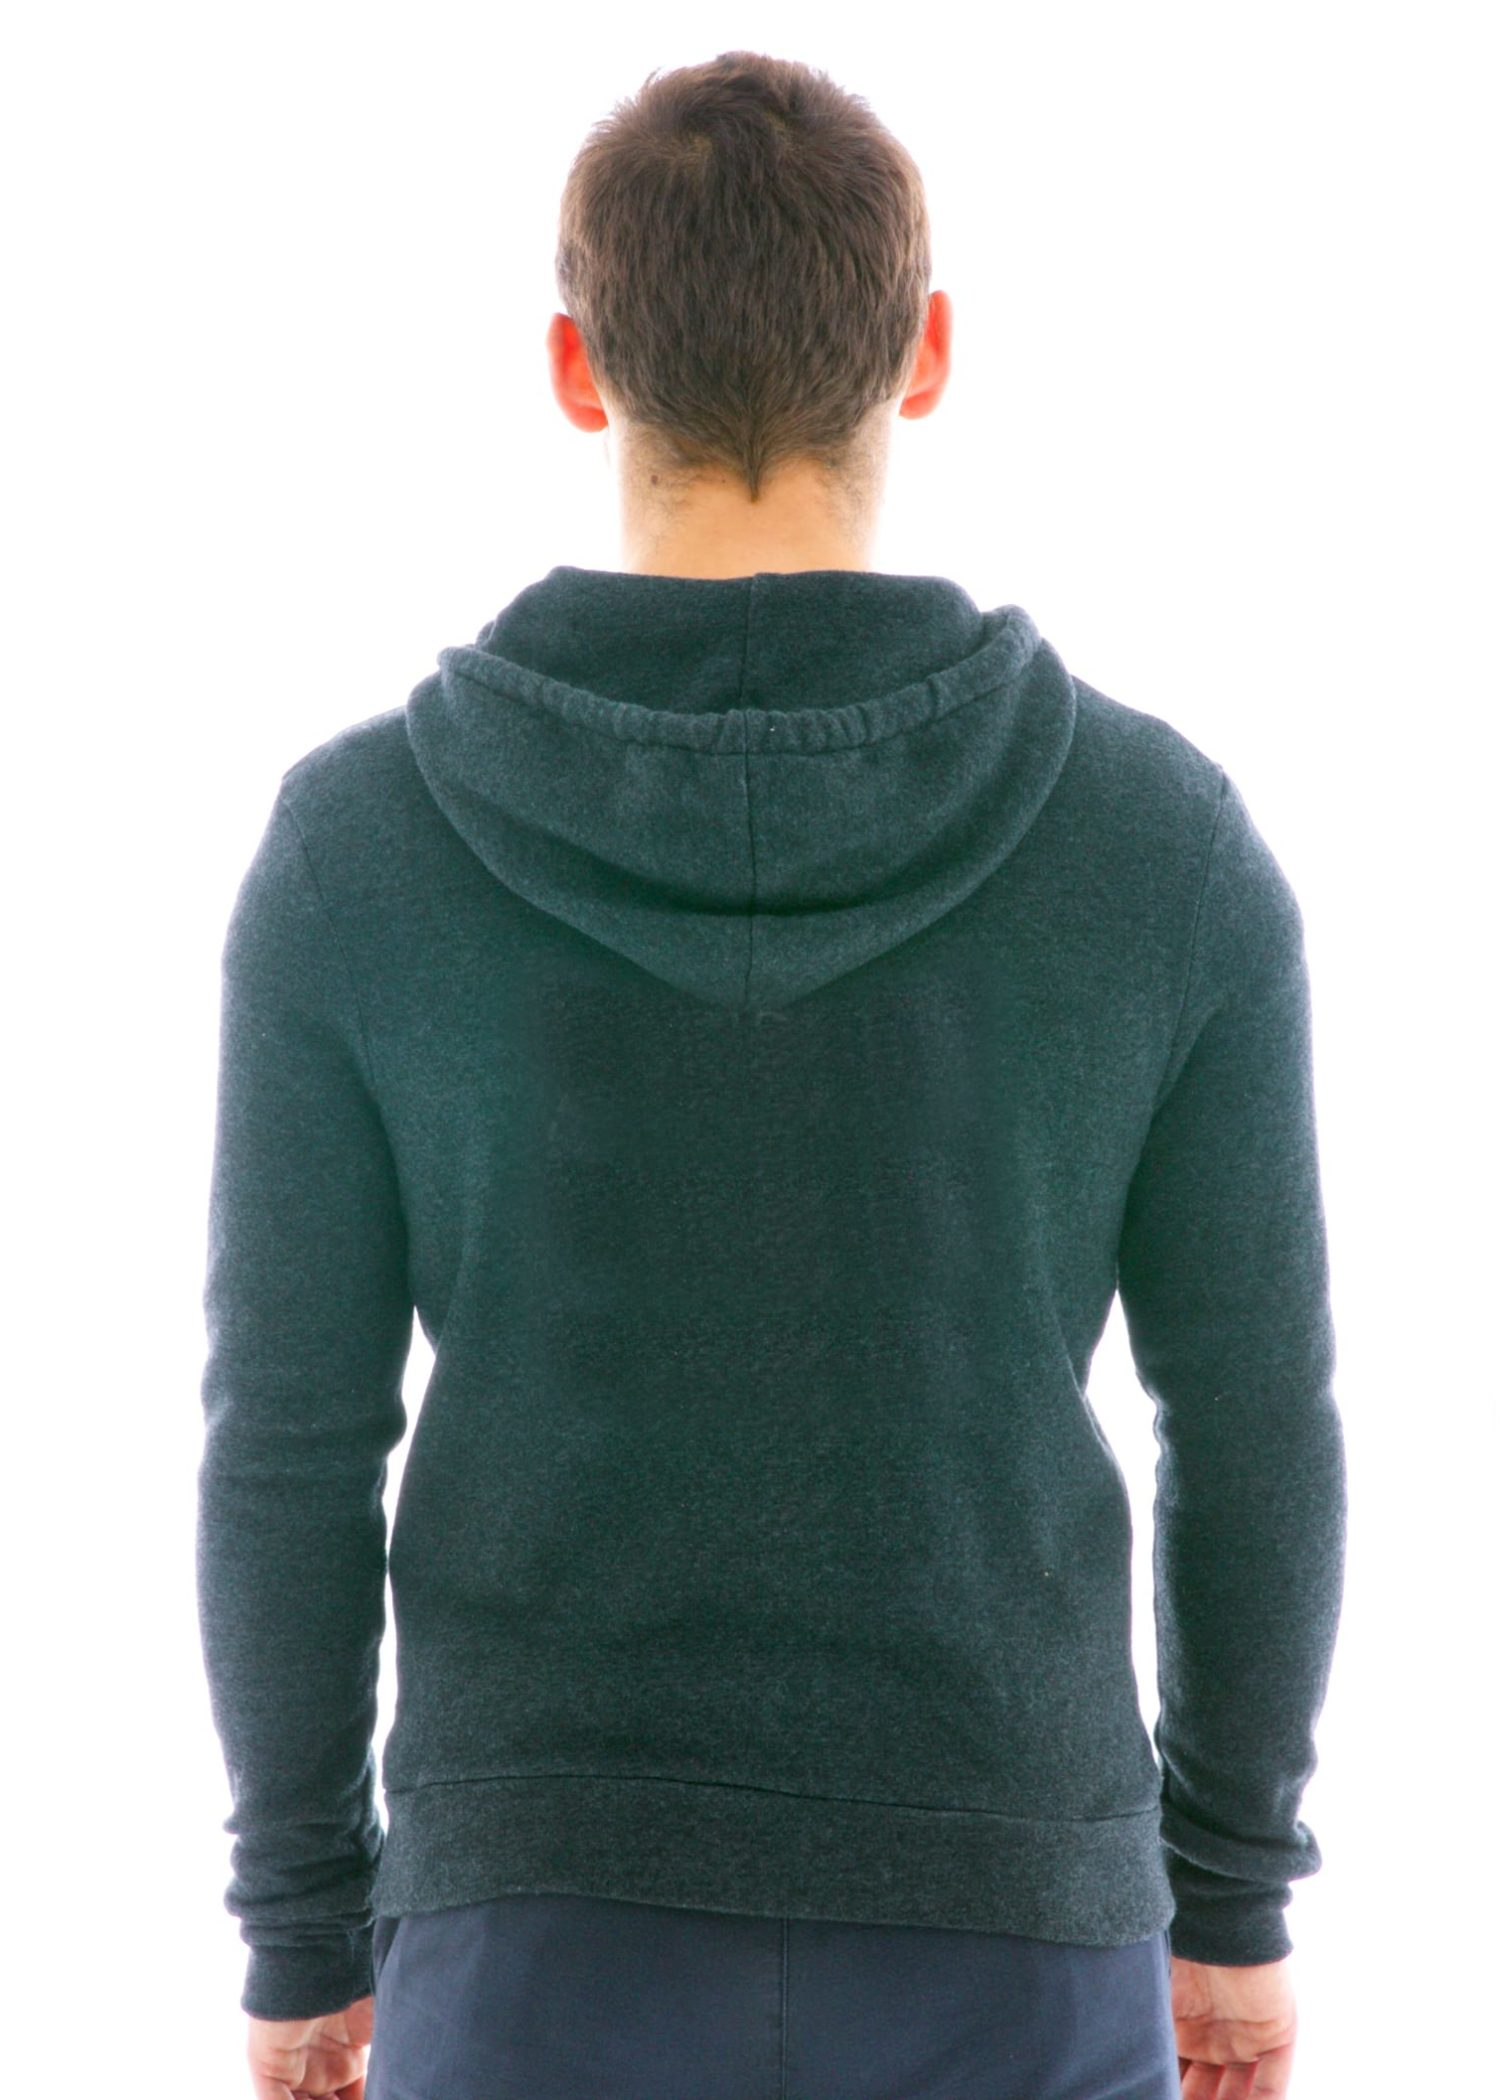 Vintage Polycotton Fleece Zip Hoodie Back View